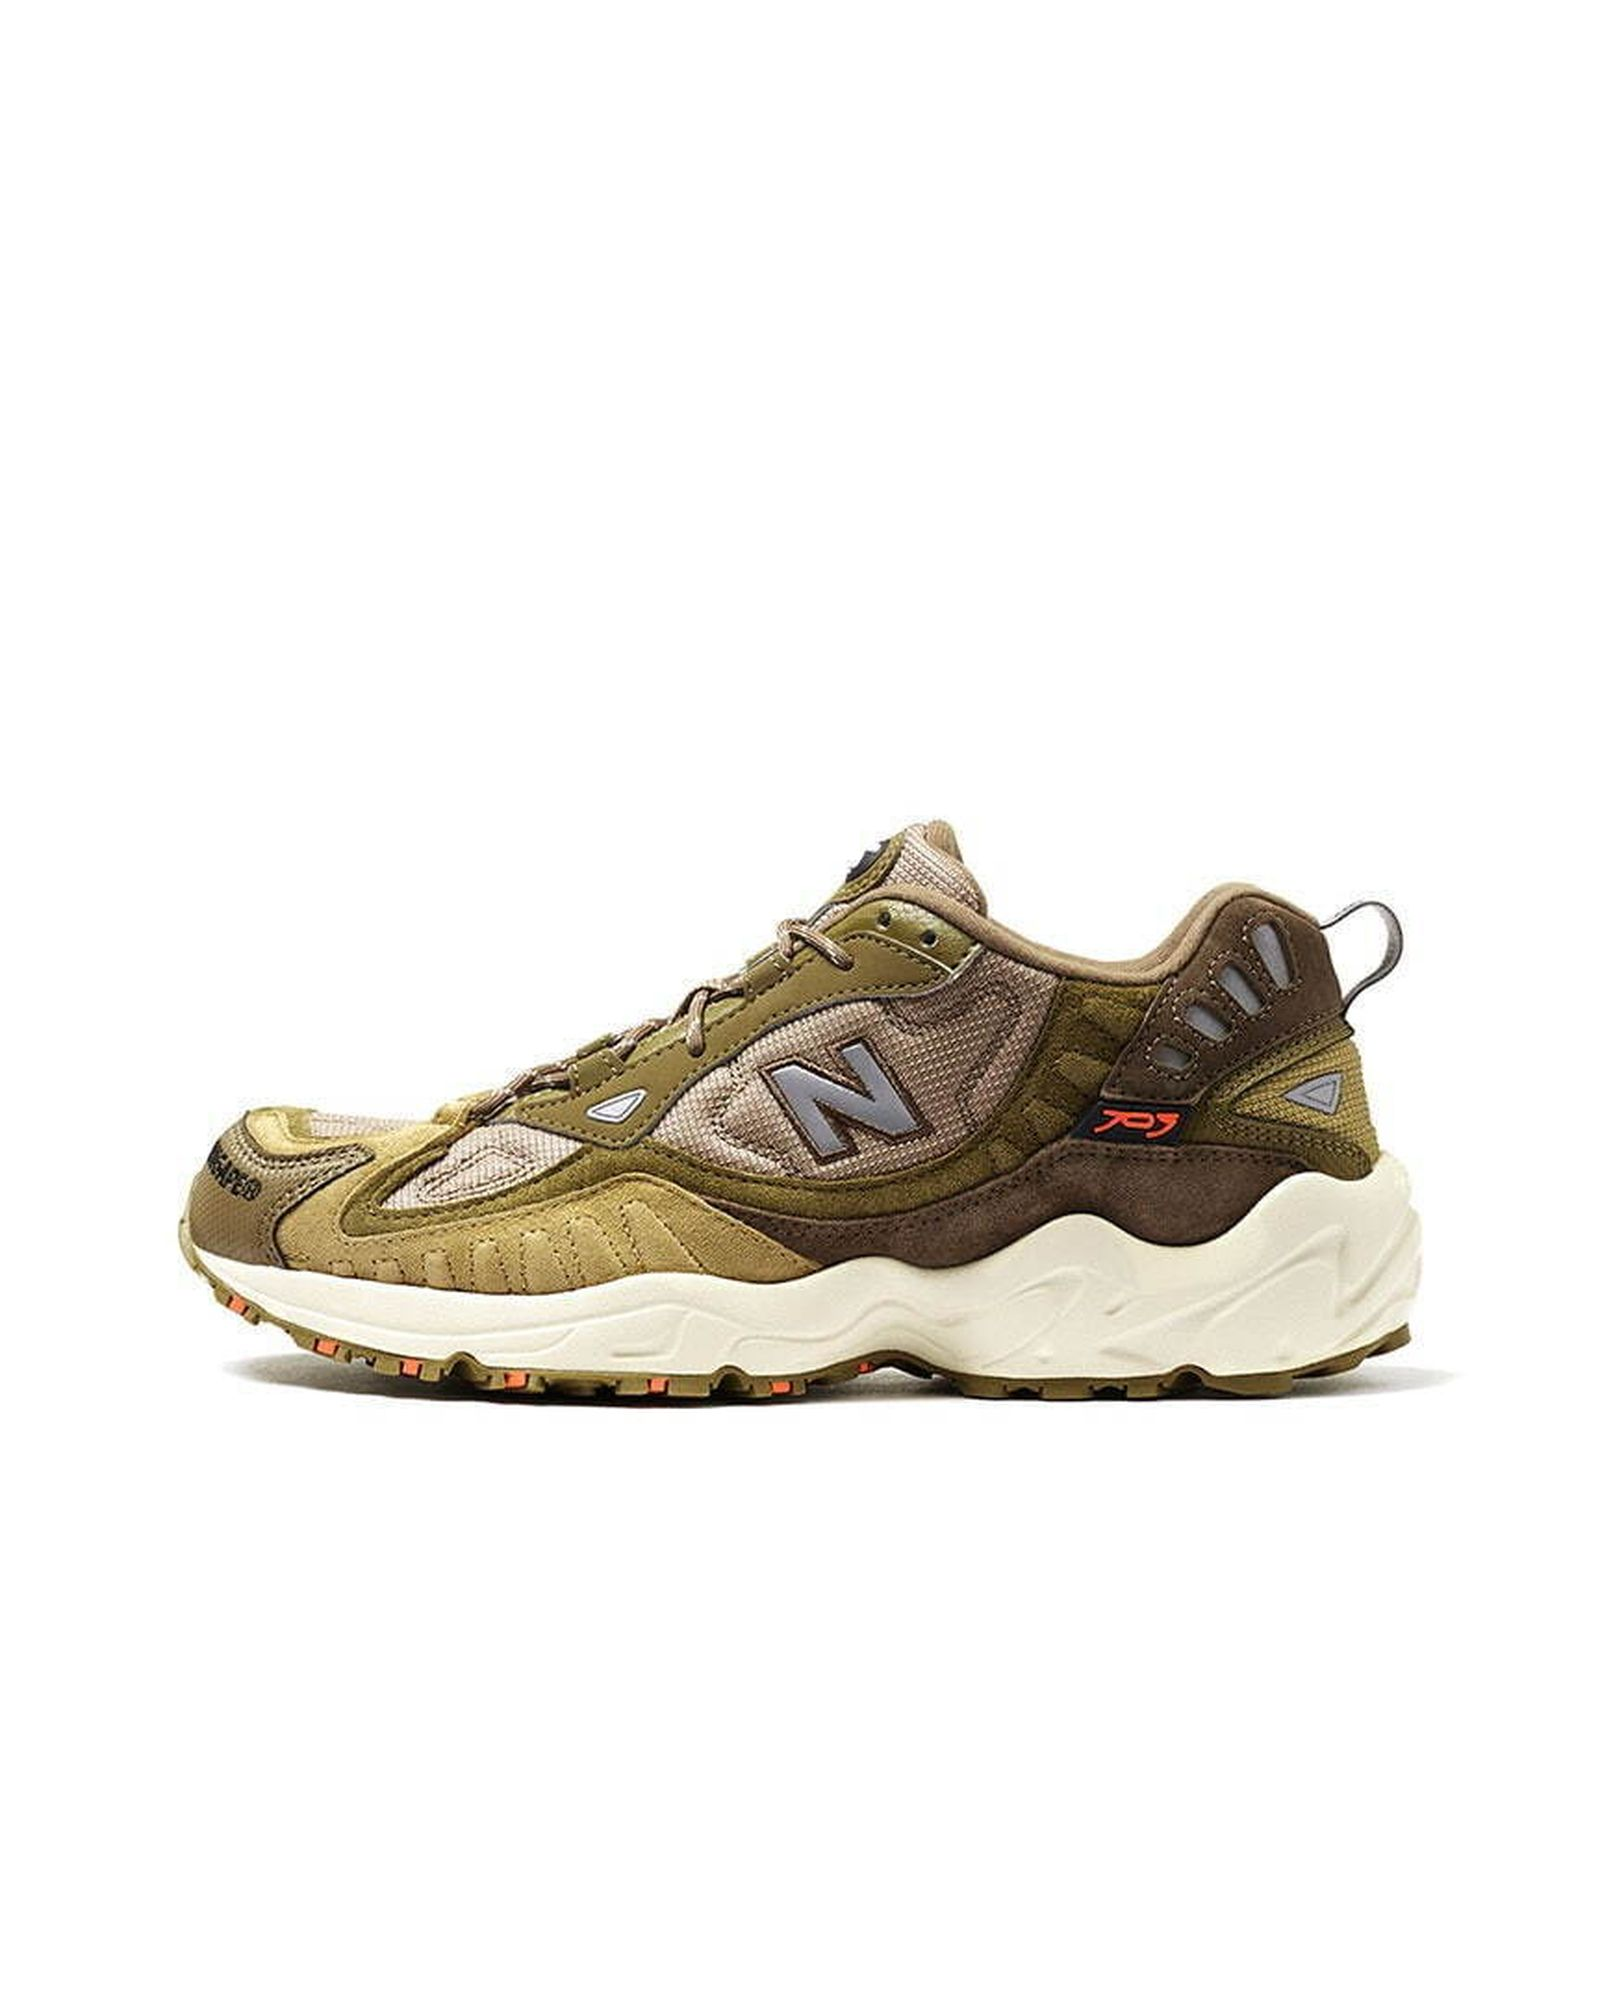 aape-new-balance-collection-release-info-7